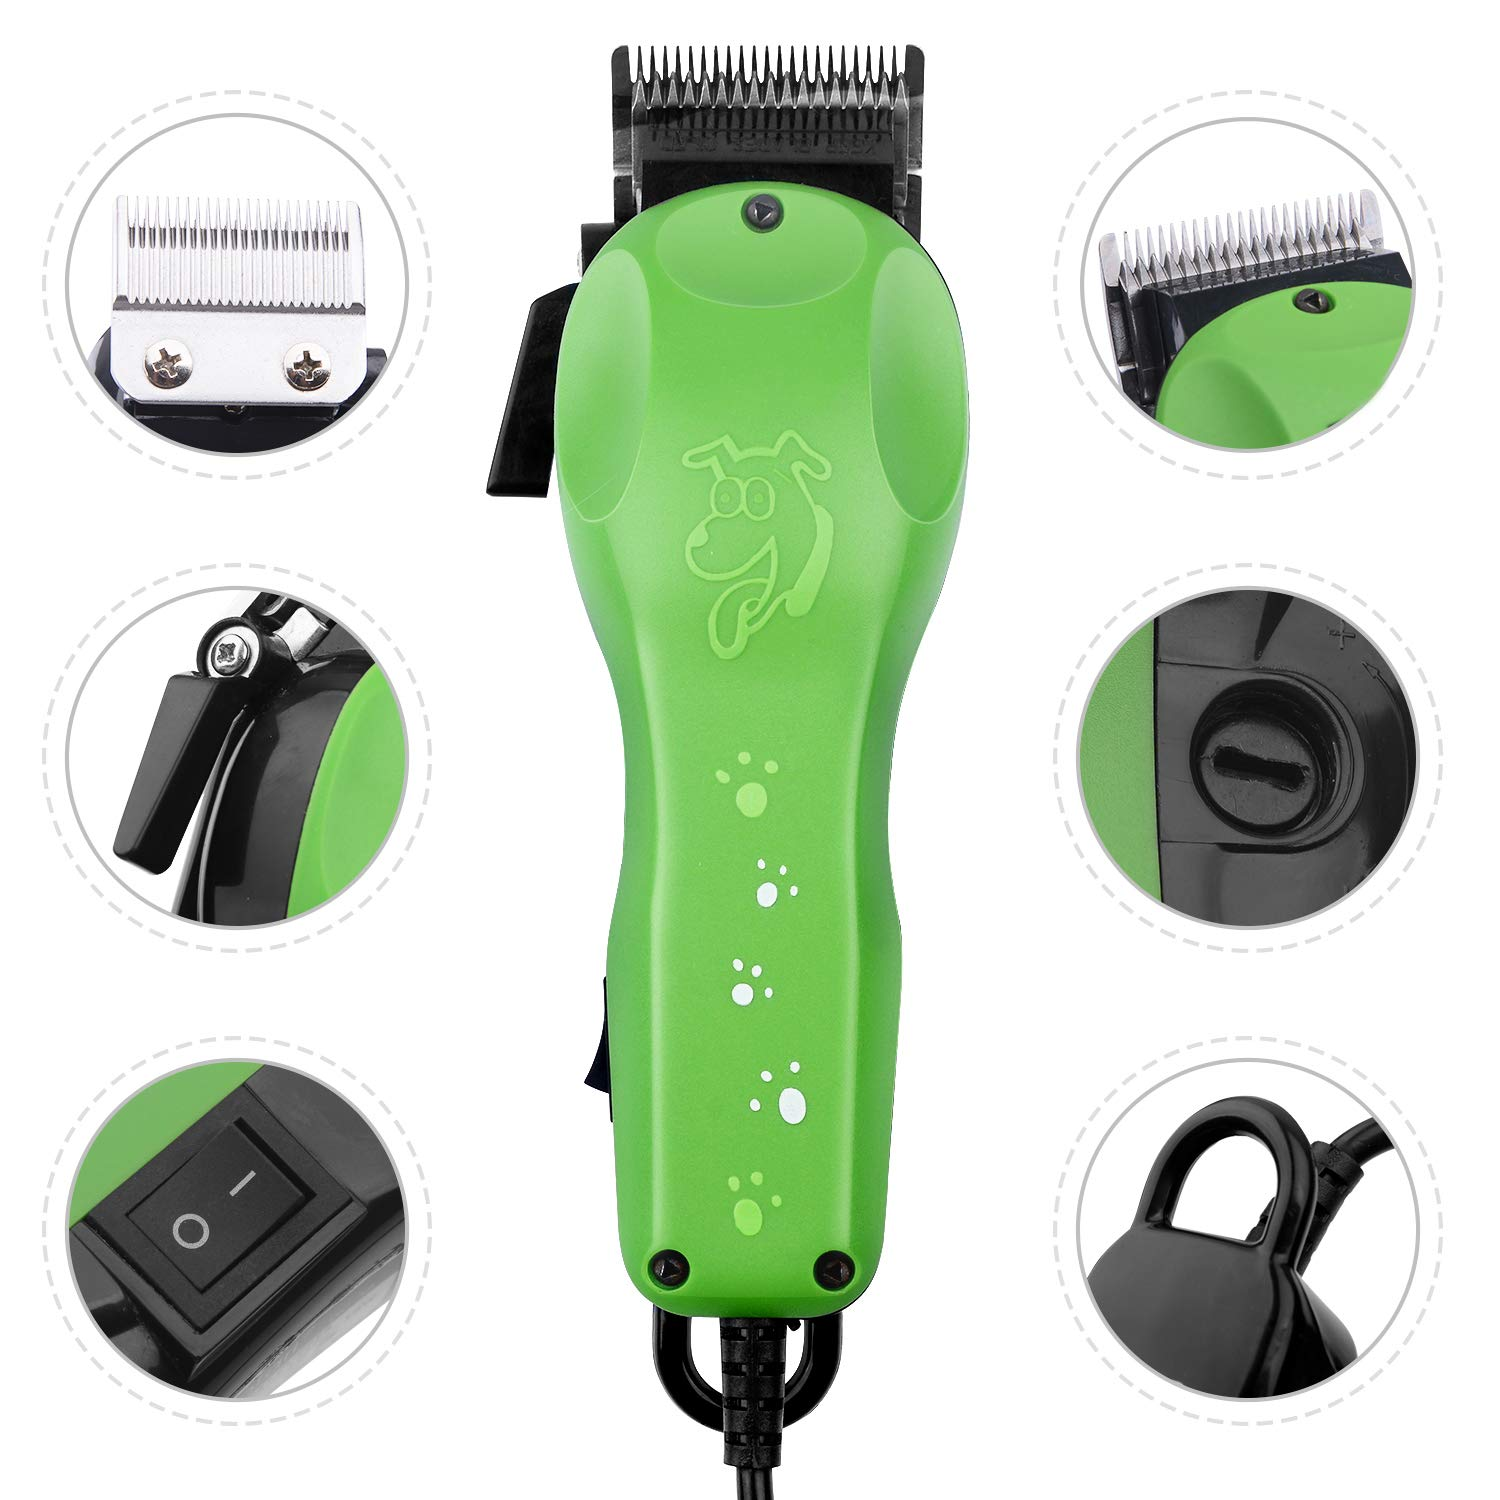 BESTBOMG Professional Electric Corded Dog Cat Trimmer Grooming Clipper Hair Removal Animal U-Clip Cordless Pet Grooming Clippers Set with Detachable Blade for All Coats with 4 Guide Combs Scissors